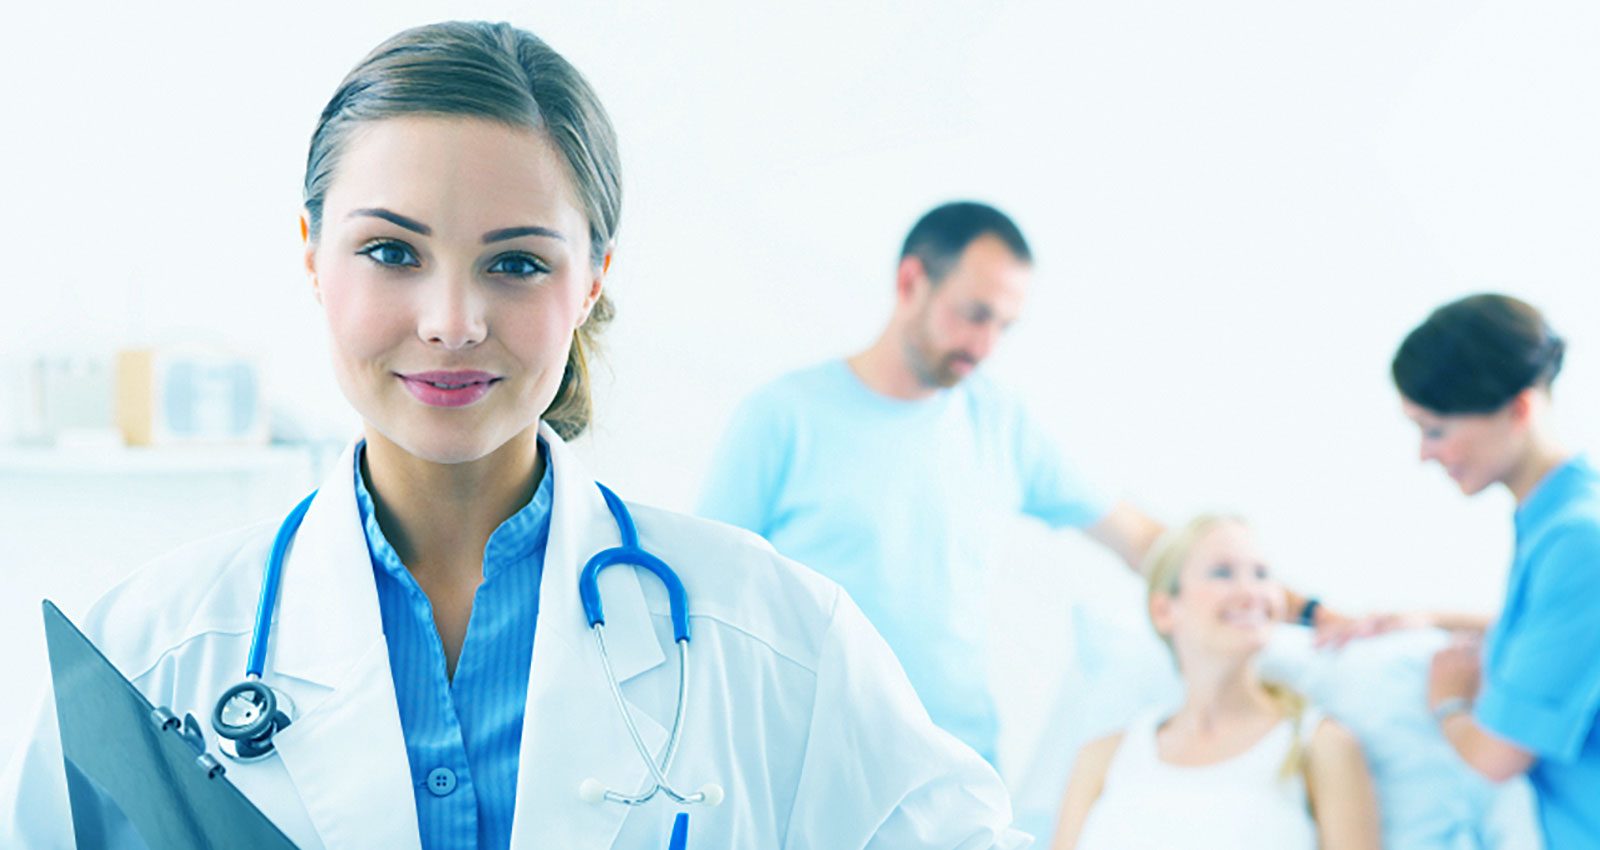 7 Steps to Negotiate Your Advanced Practice Provider Starting Salary